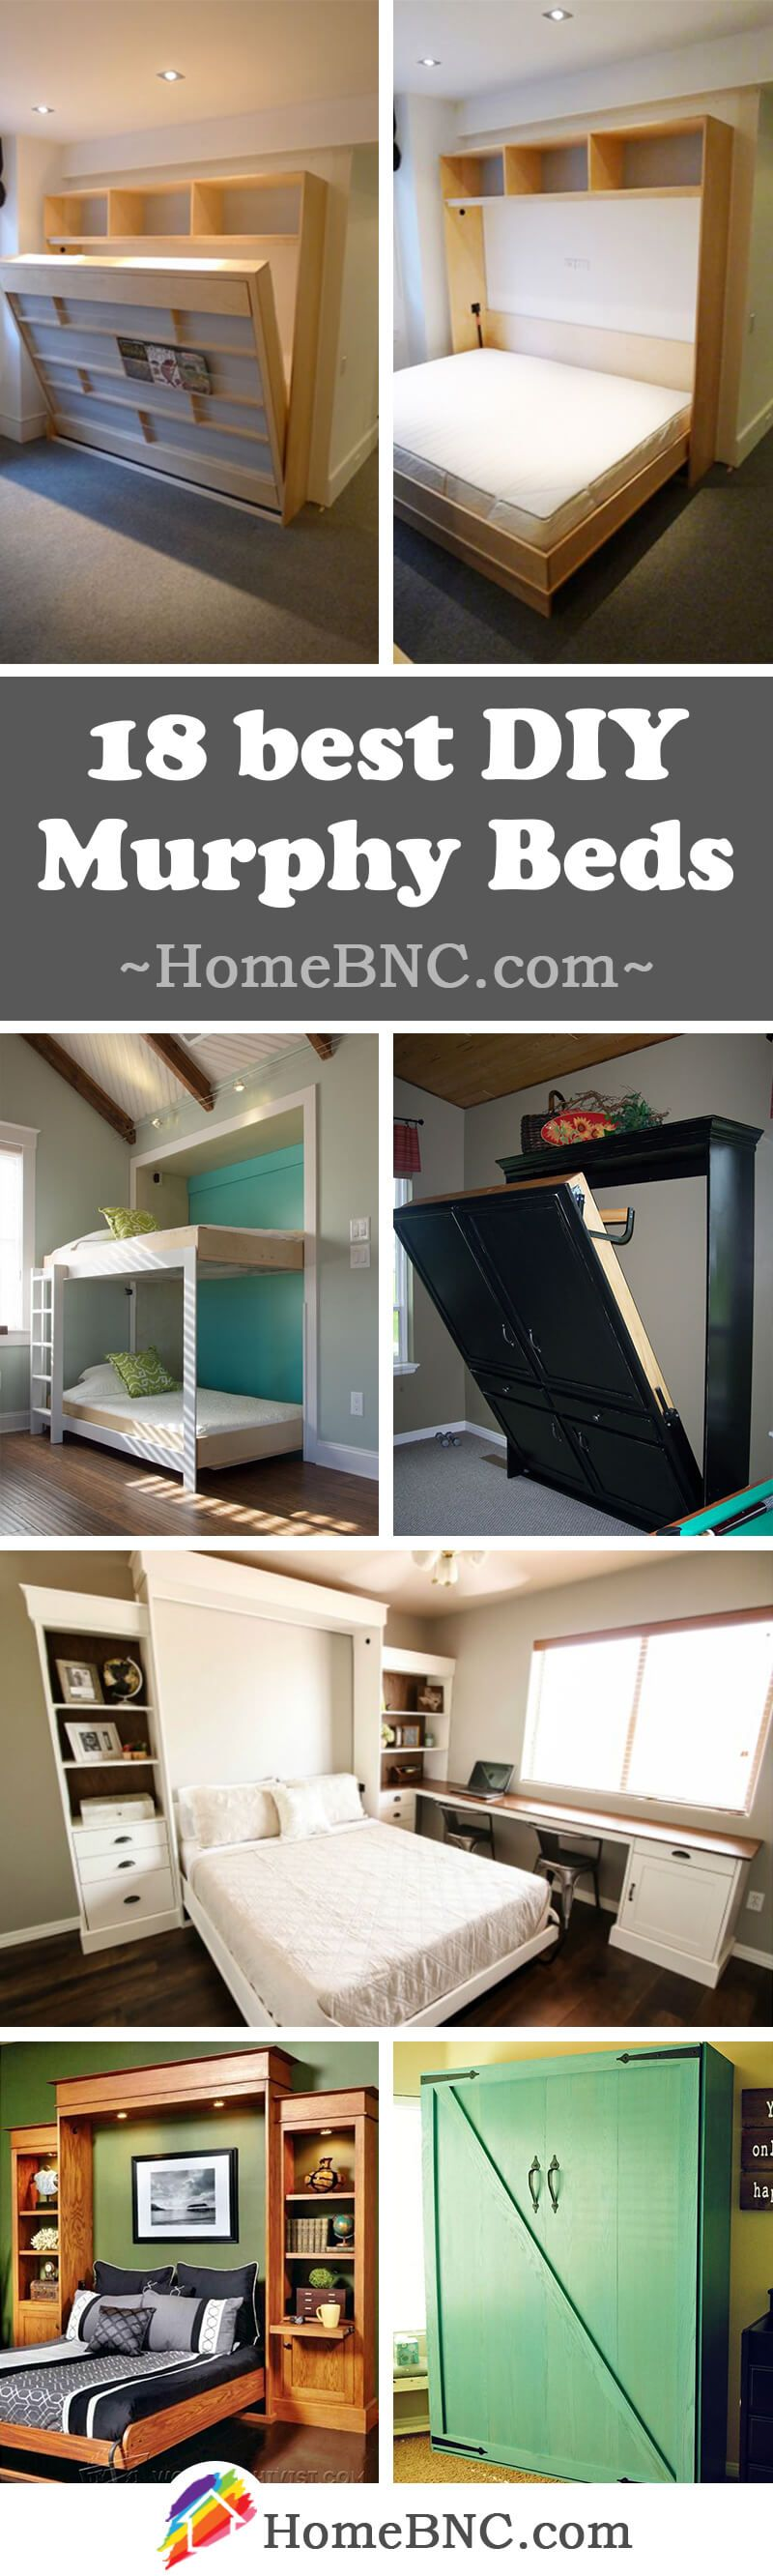 Murphy Beds And More Jupiter : The best diy murphy bed ideas to maximize your space